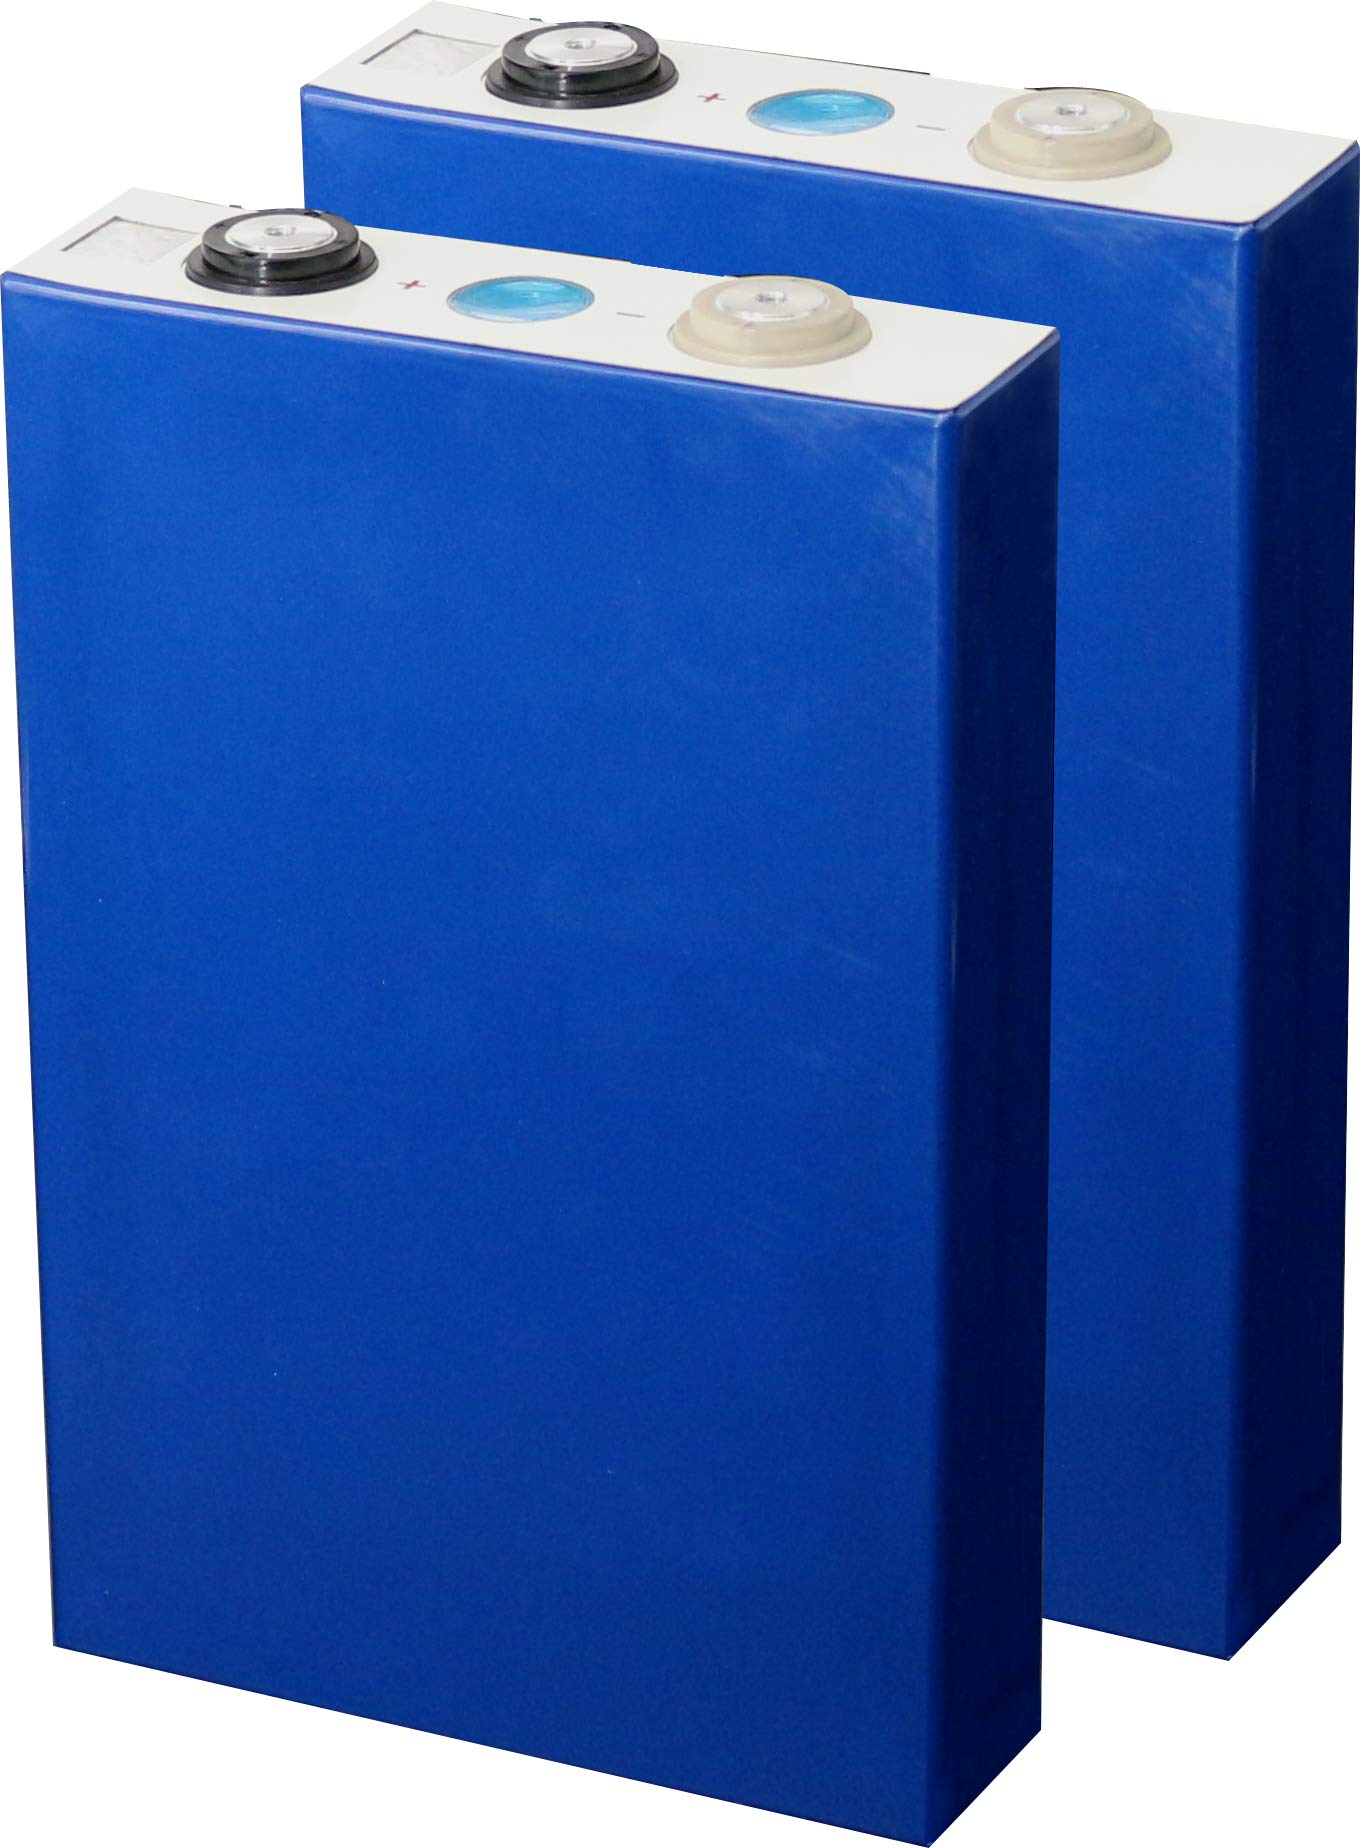 2x Cells Eastup Lithium Iron Phosphate (LiFePo4) Battery Cells 3.2V-50AH 160Wh 10 Years Lifetime.